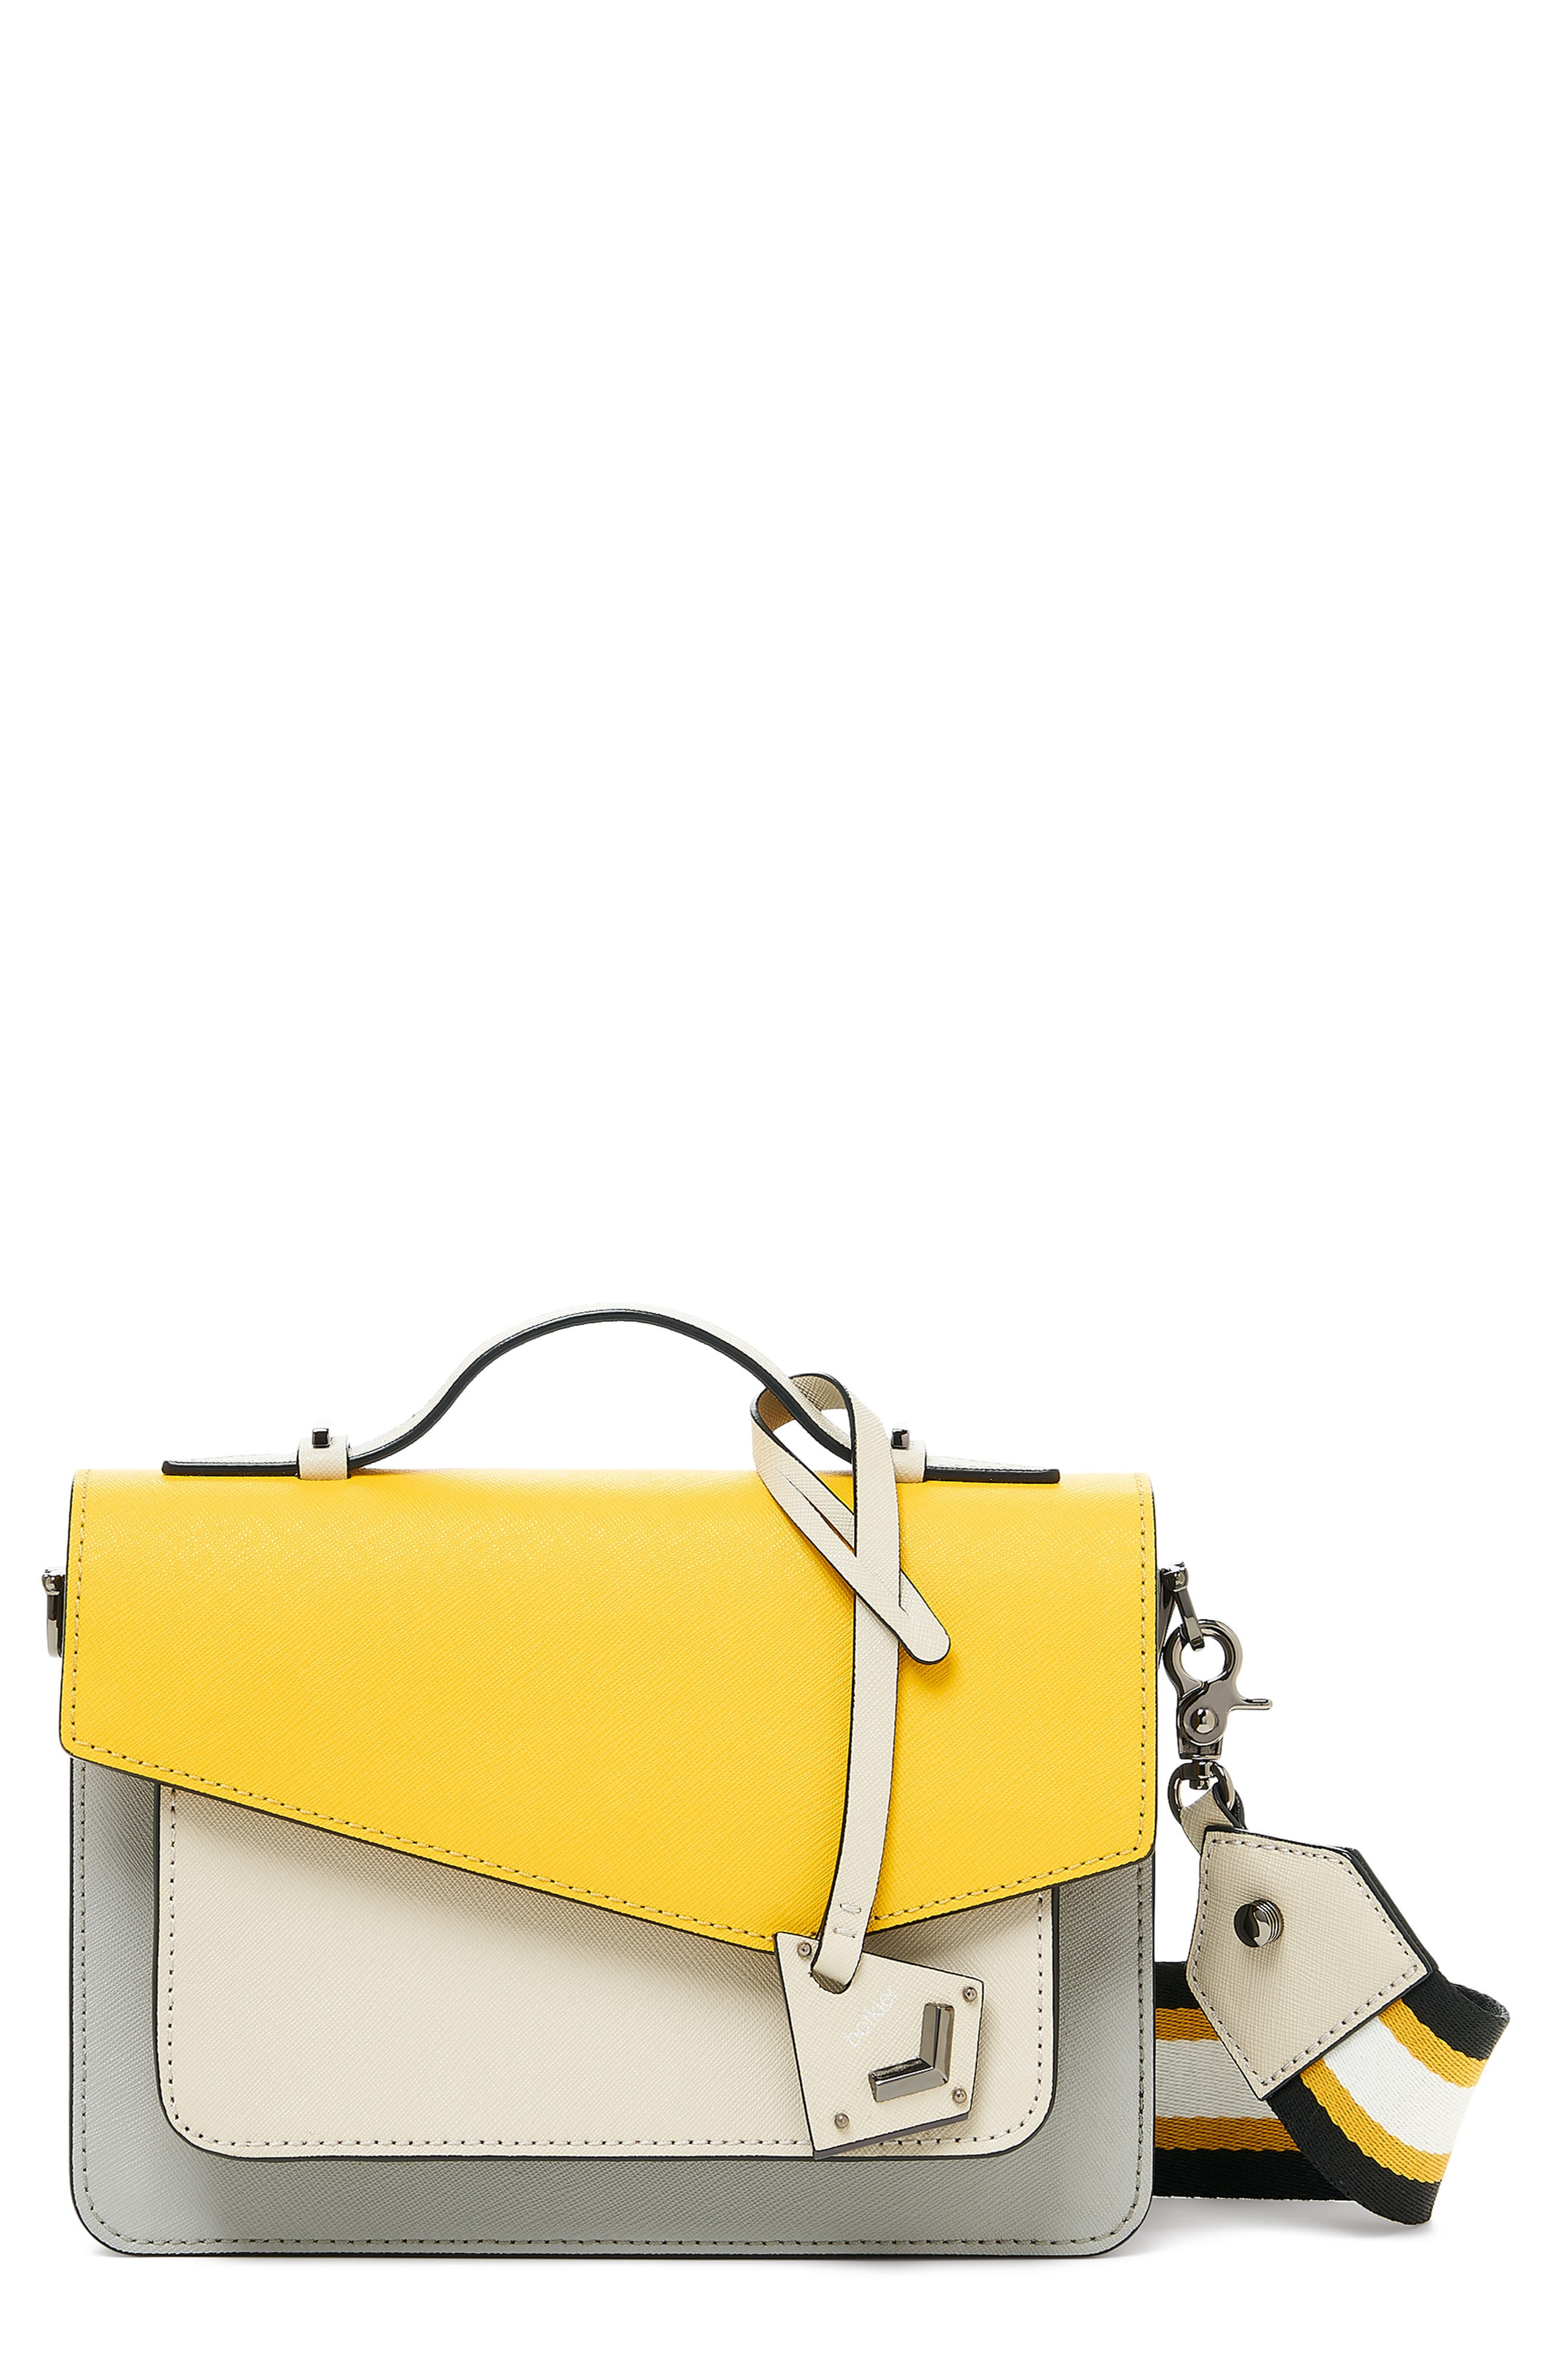 Cobble Hill Leather Crossbody Bag - Yellow in Marigold Pop